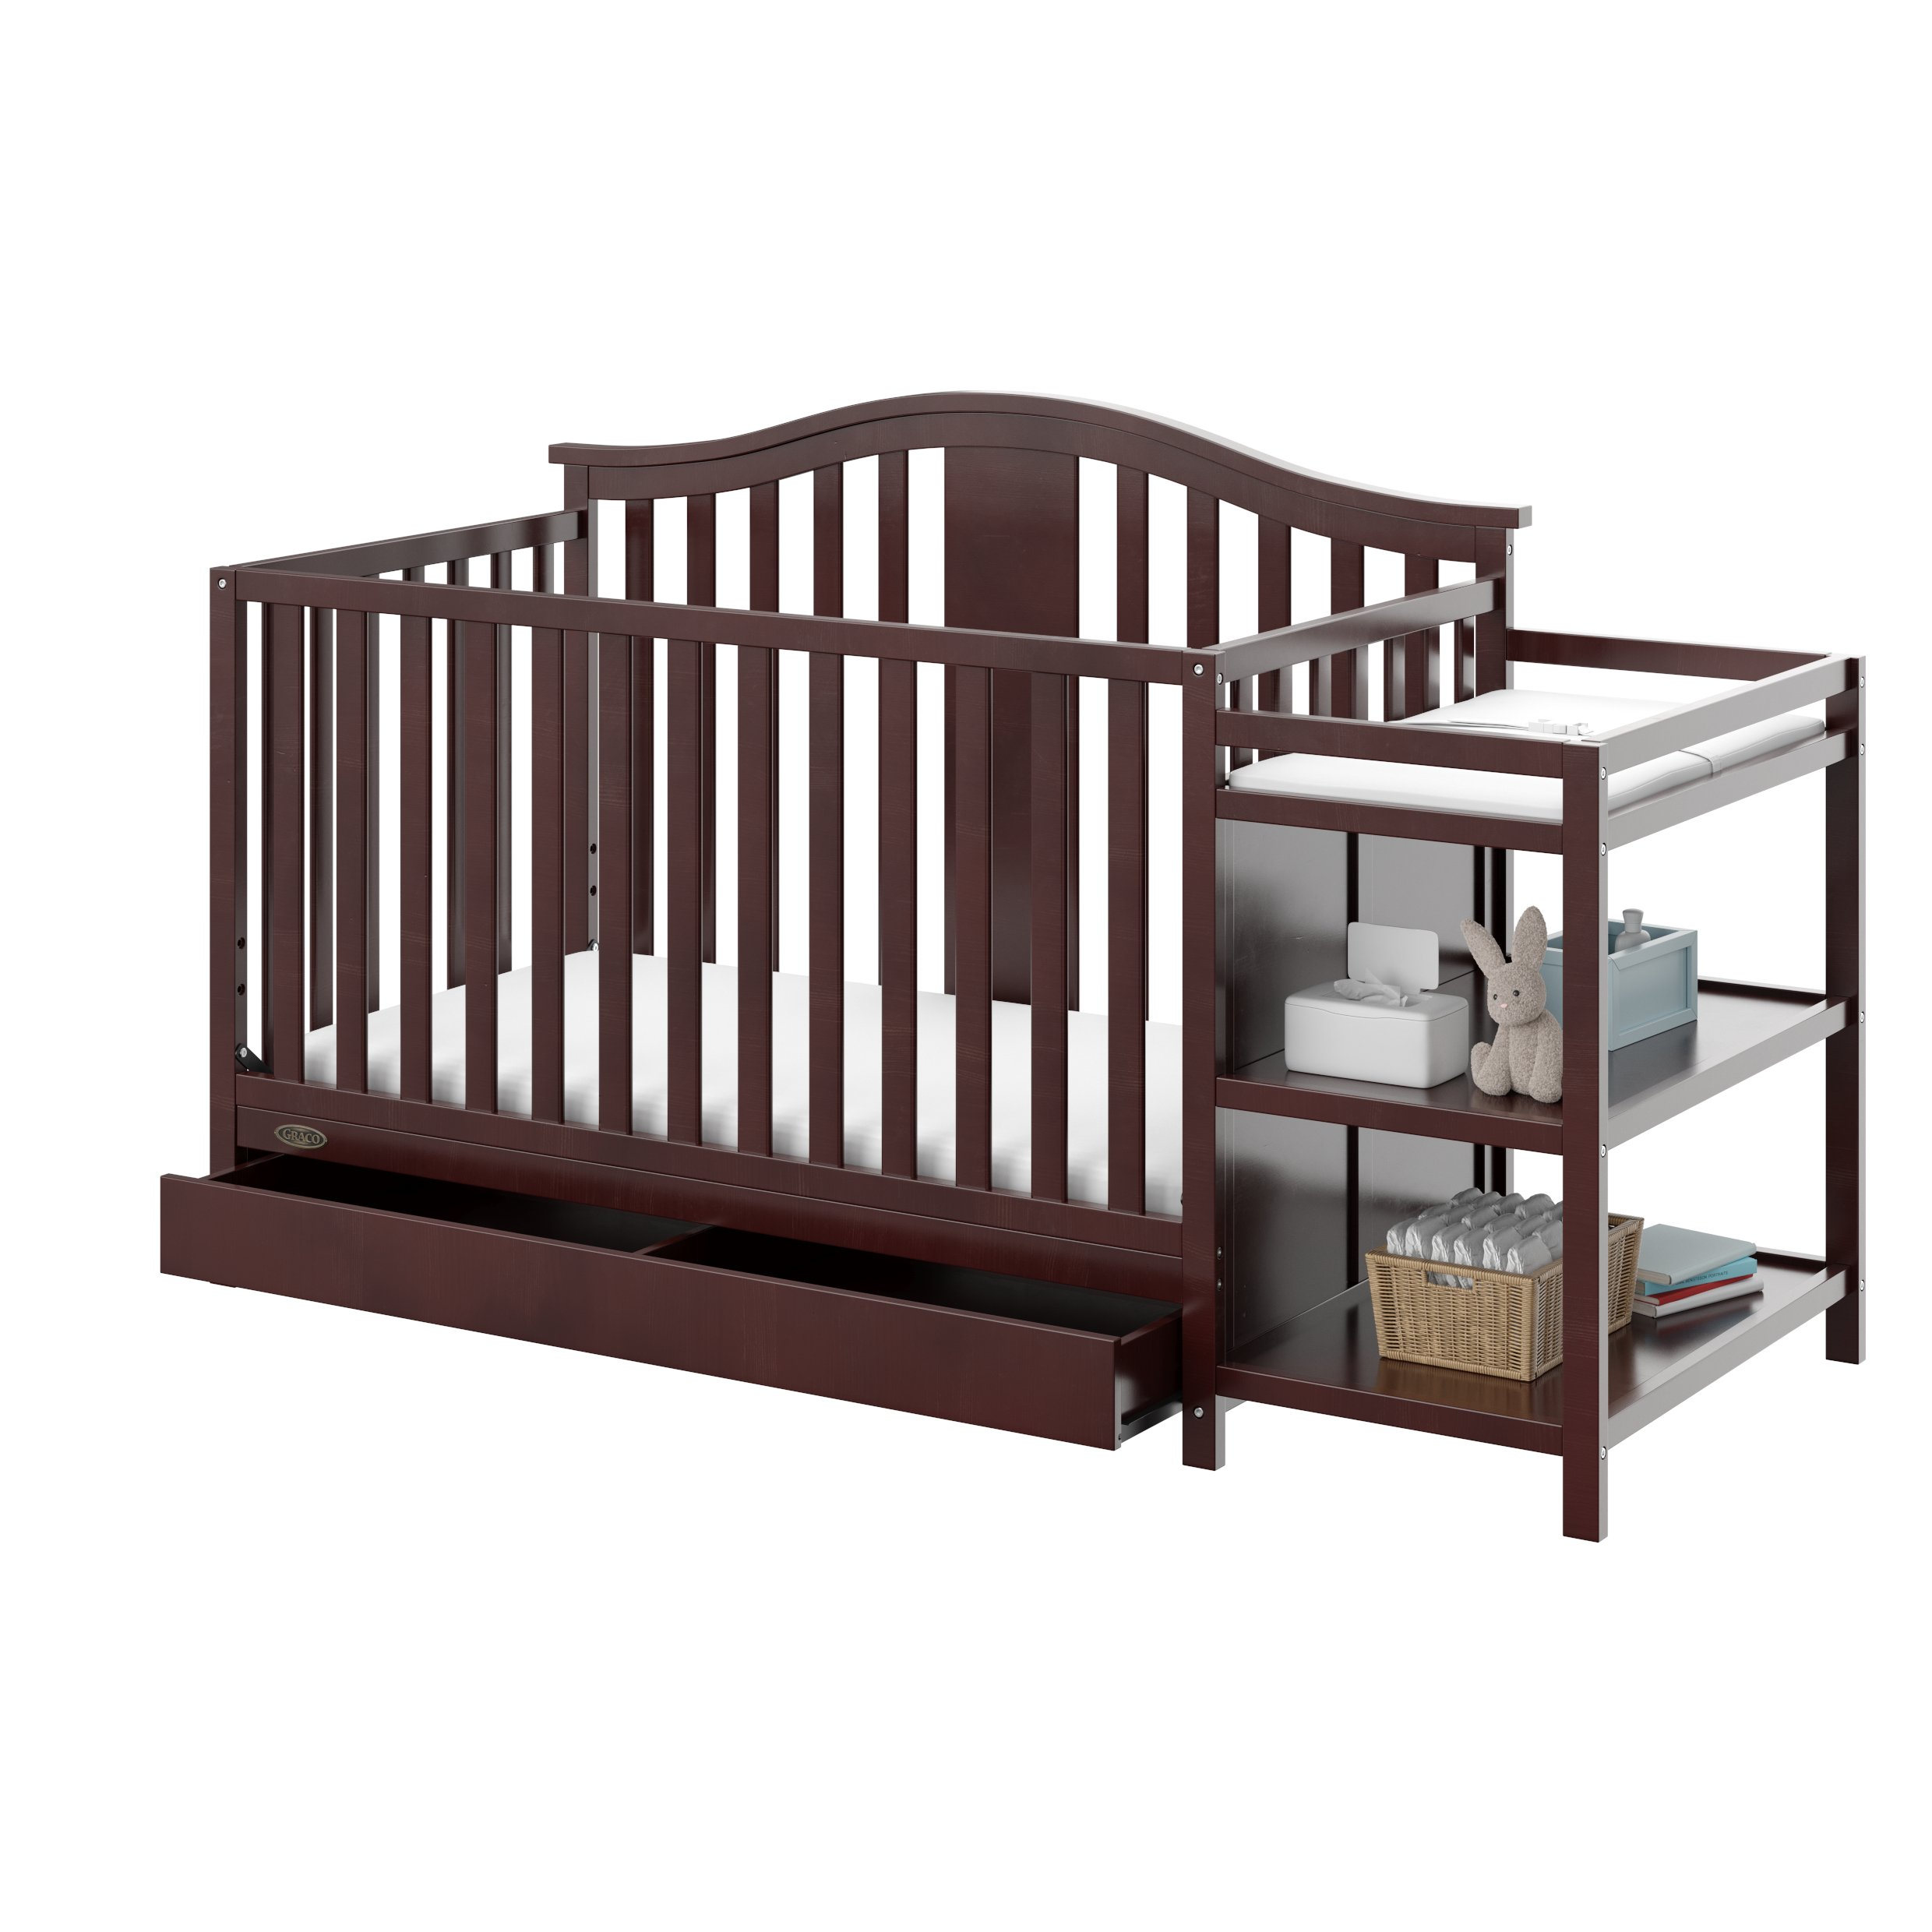 usa convertible of changing katia with table attached changer crib fresh davinci cribs and bo made in luxury model white winter piedmont